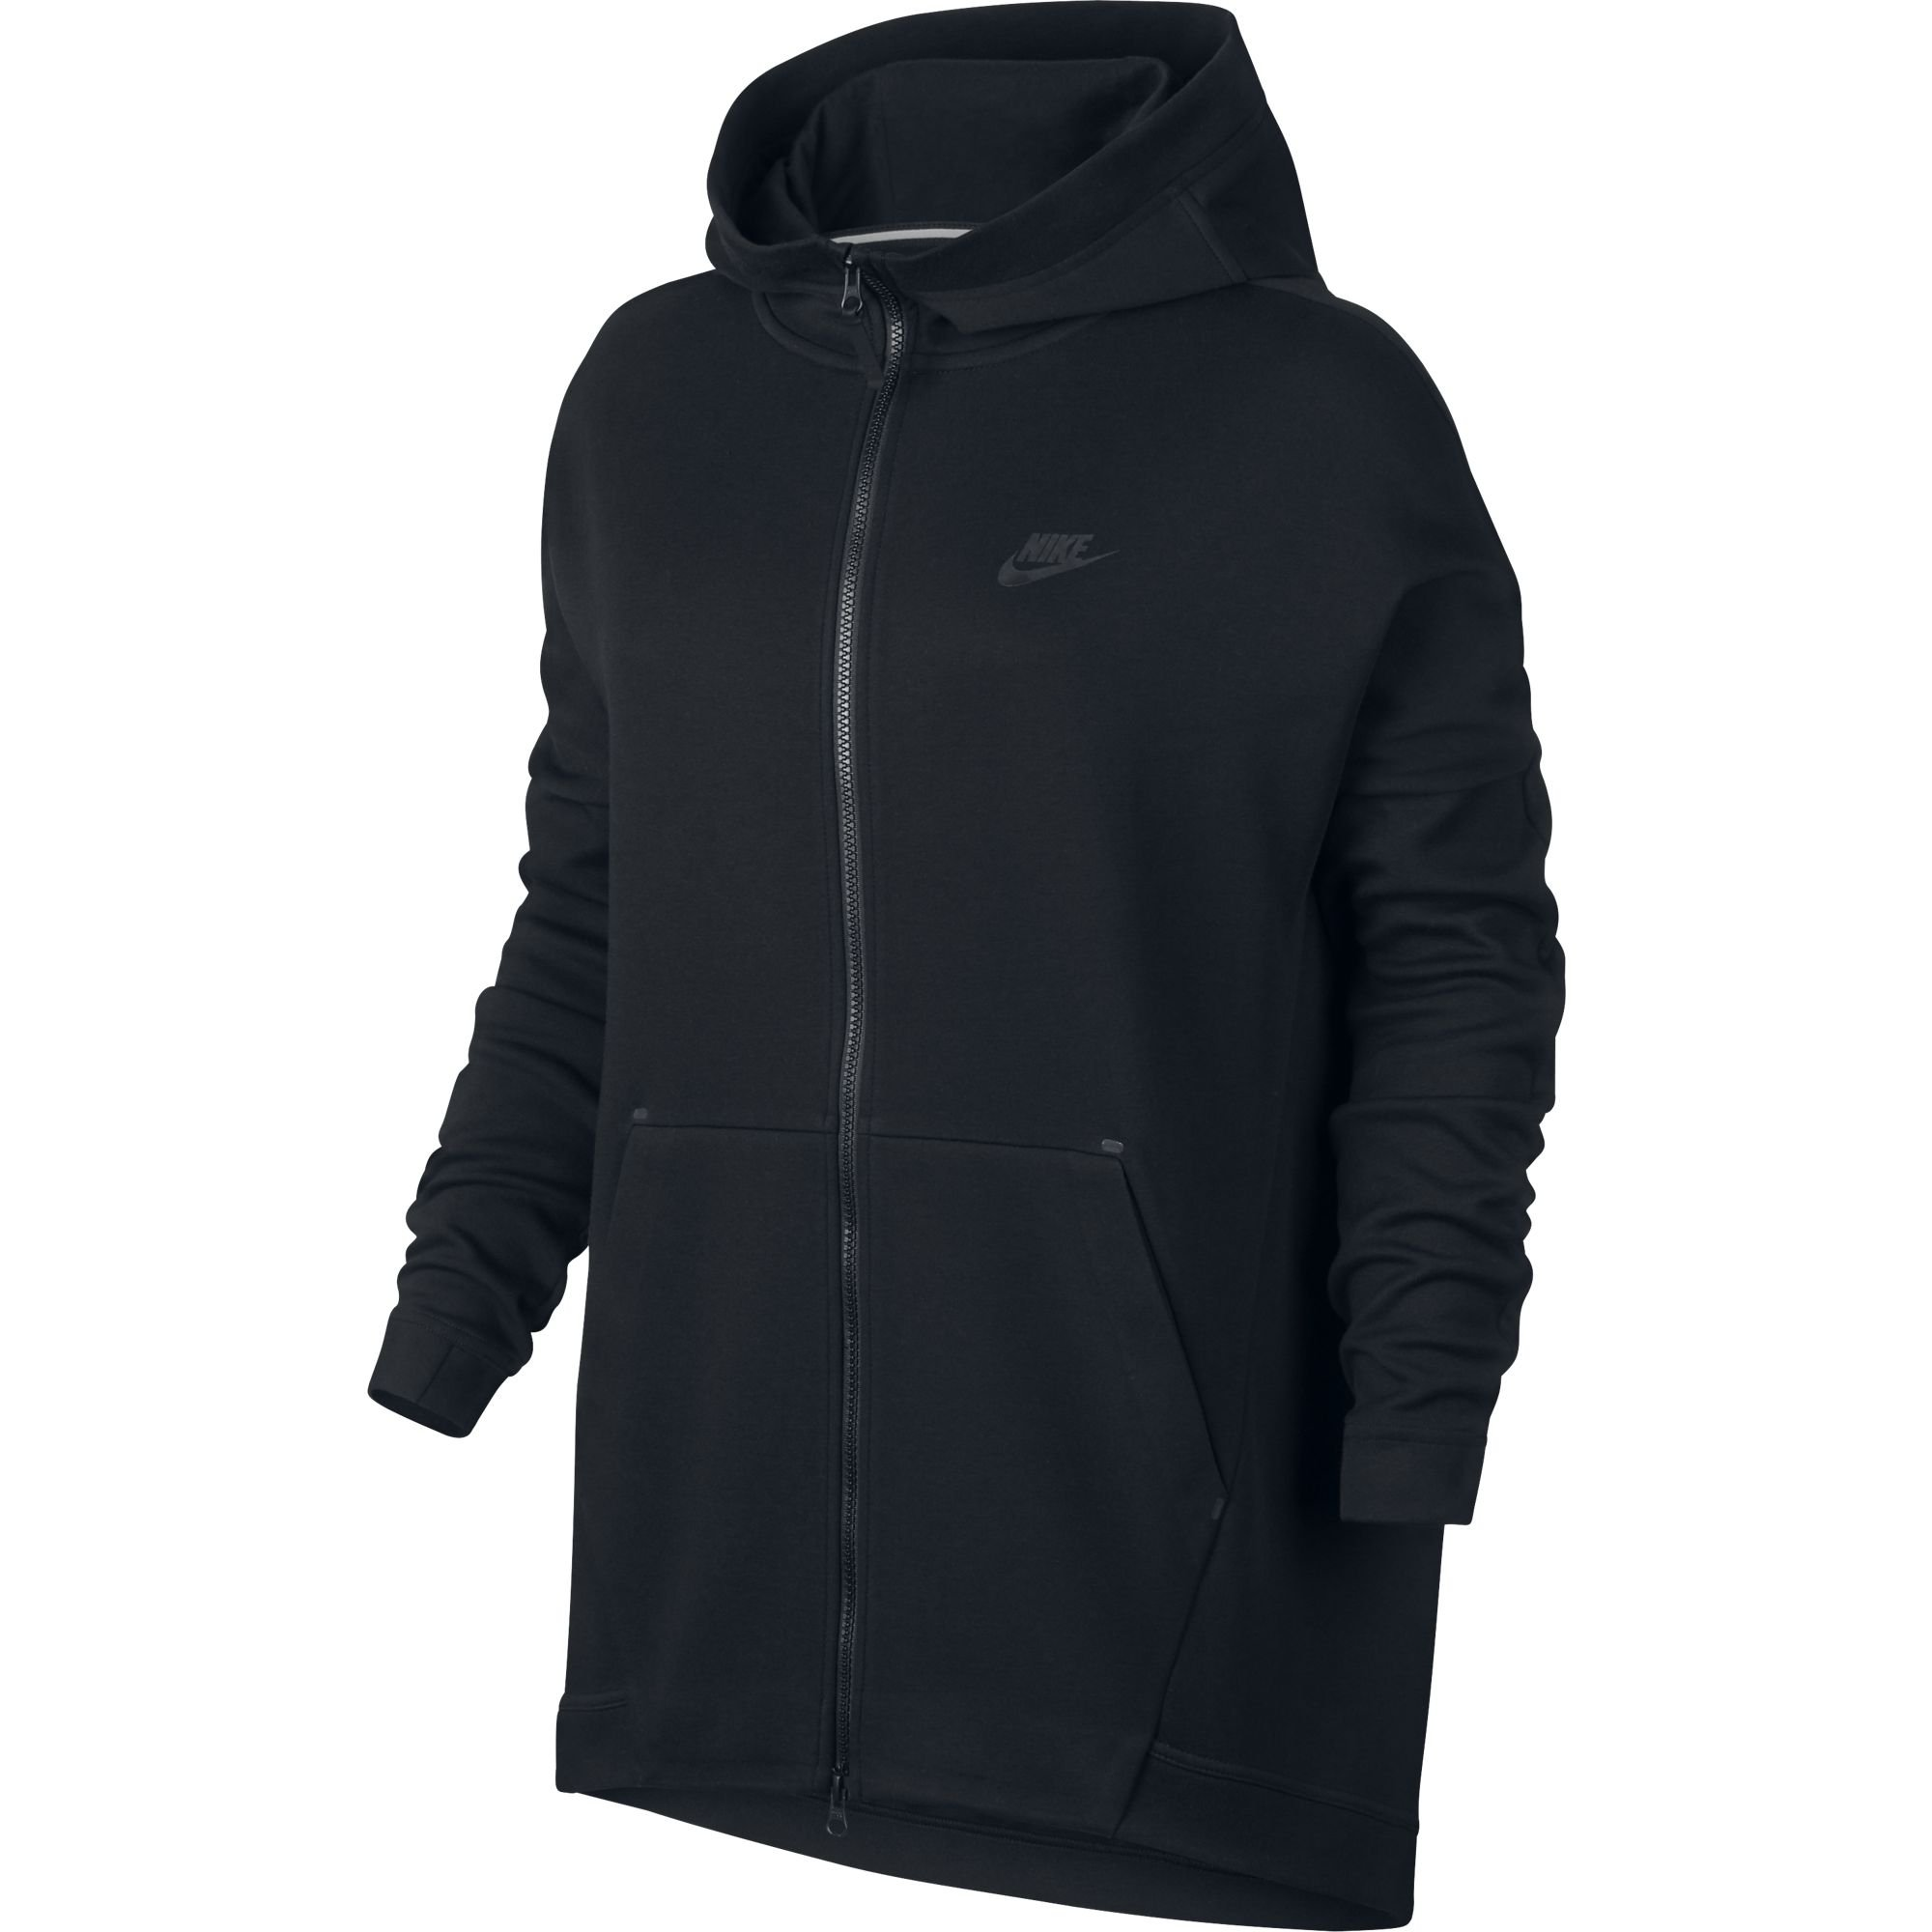 Nike Women's Sportswear Tech Fleece Cape Jacket 811710 (Black/Black, Medium)